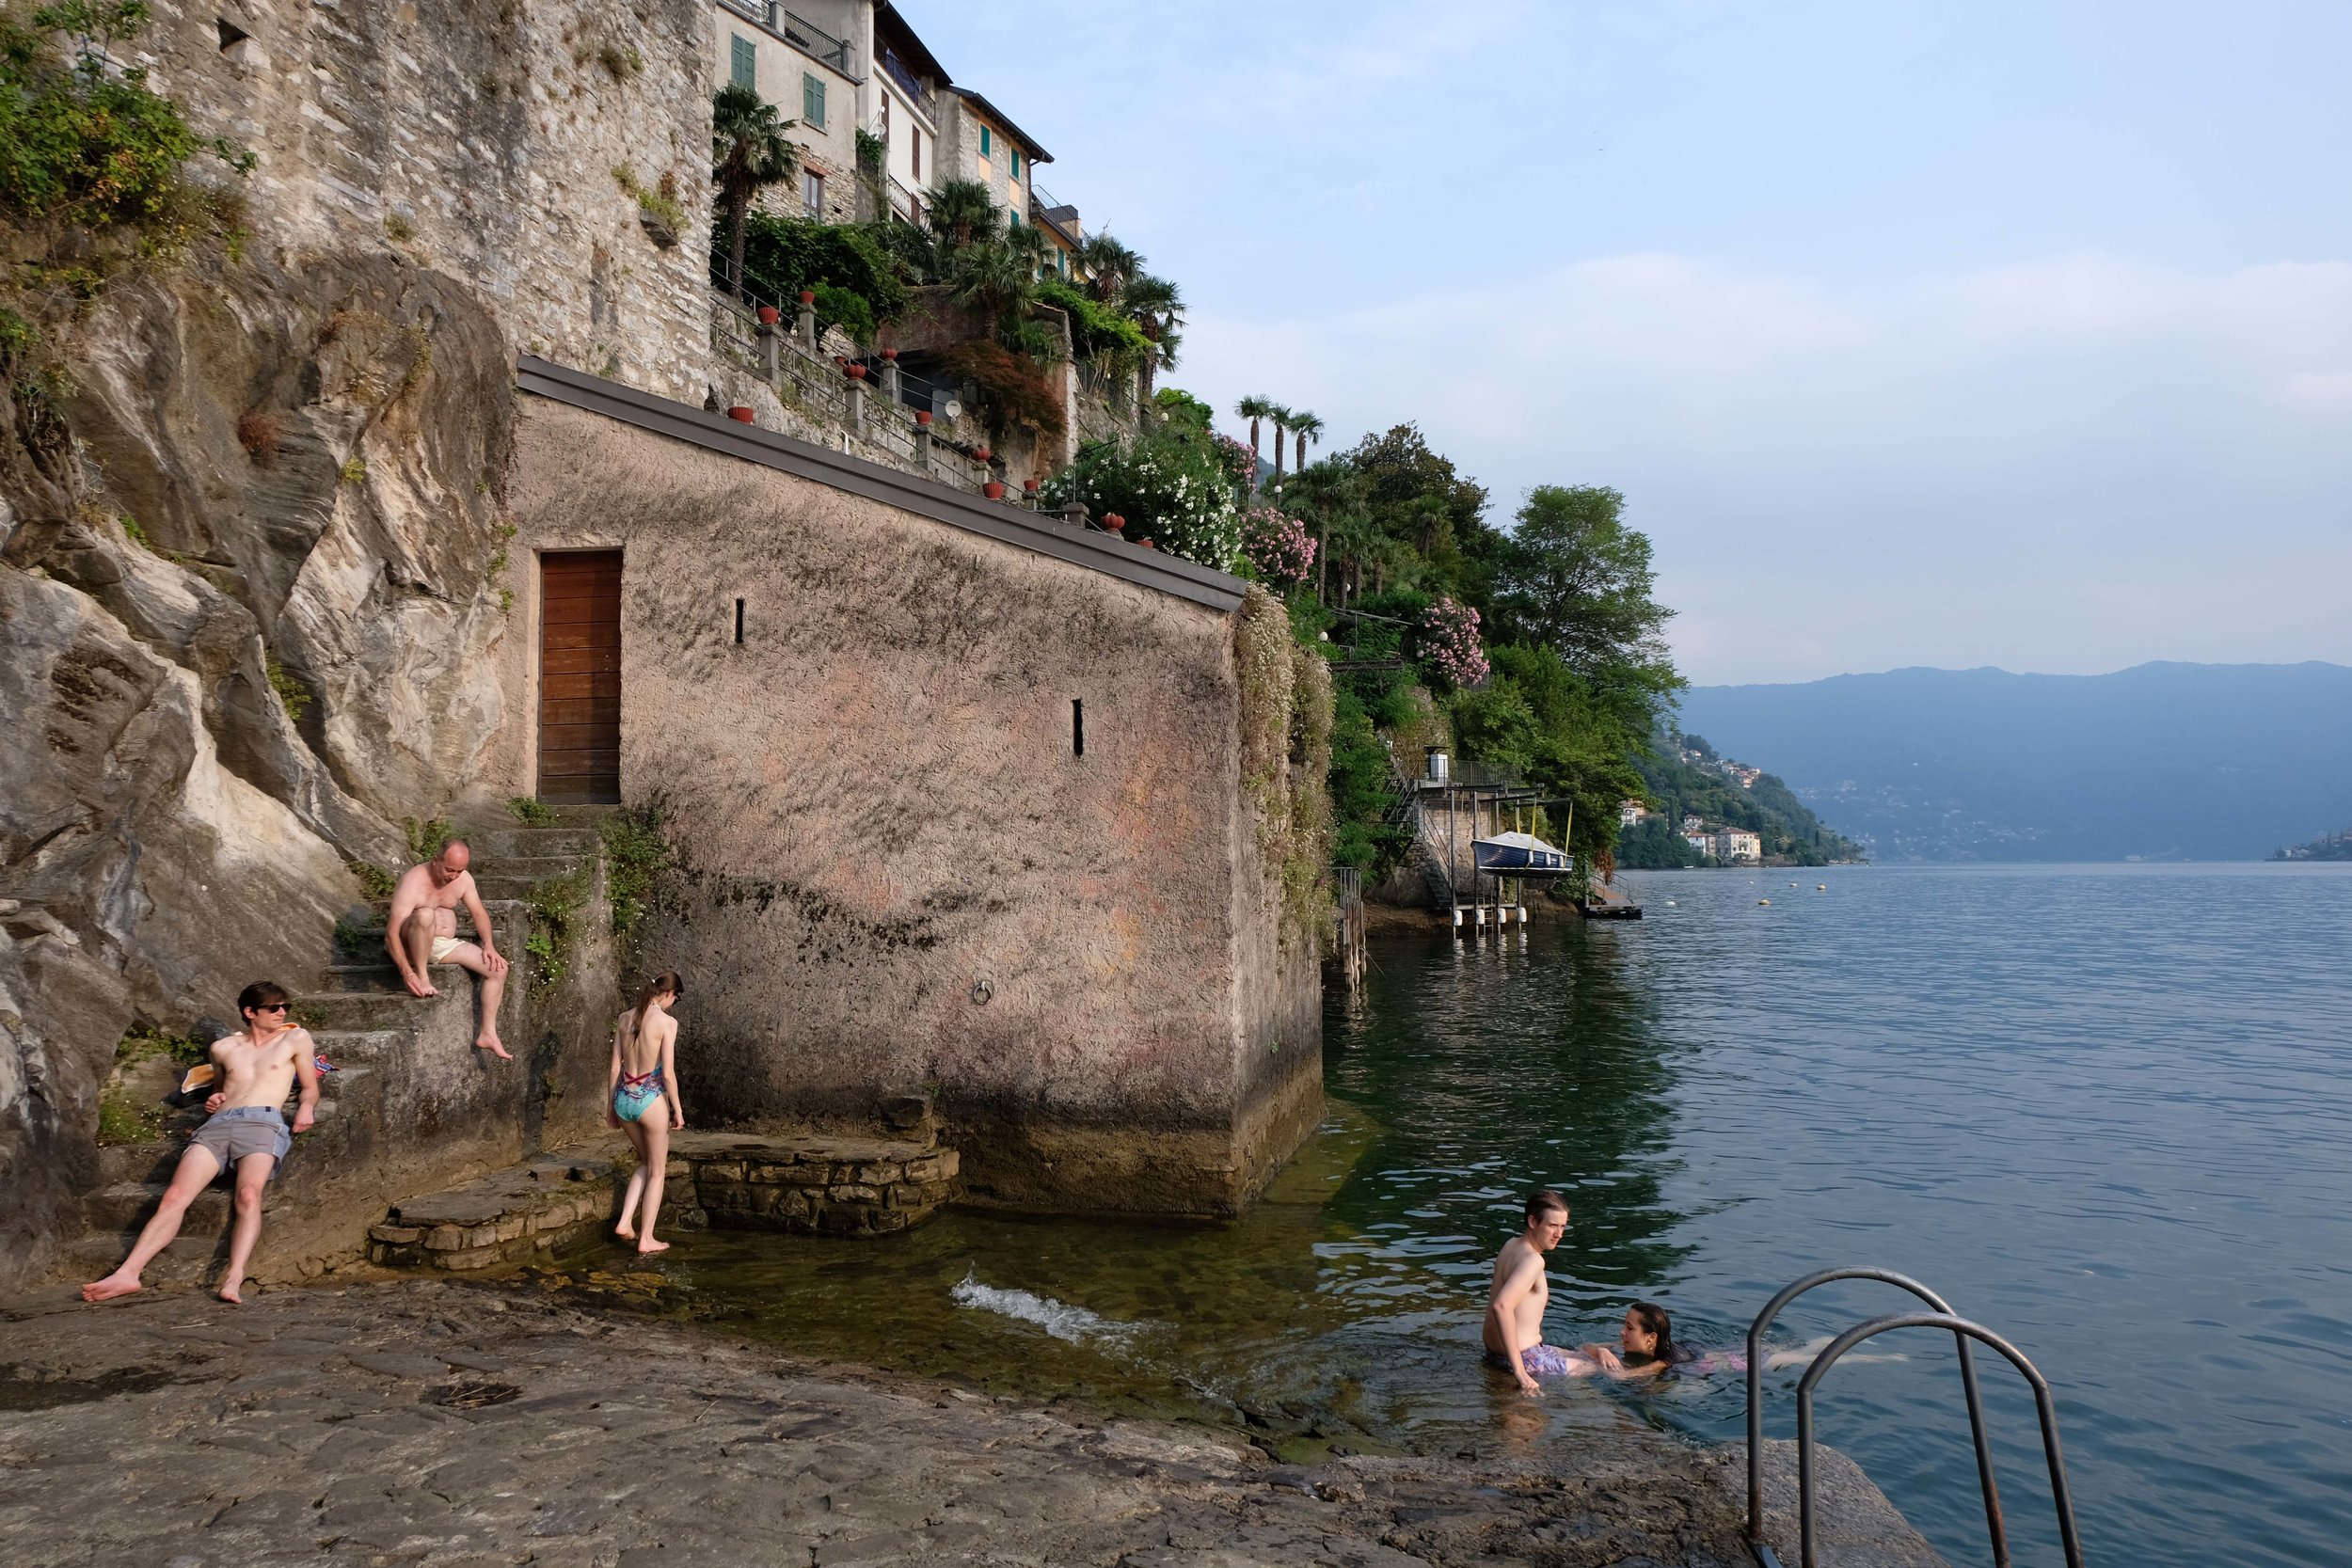 Bathers in Nesso, on Lake Como, Italy. Photograph by Zander Abranowicz.